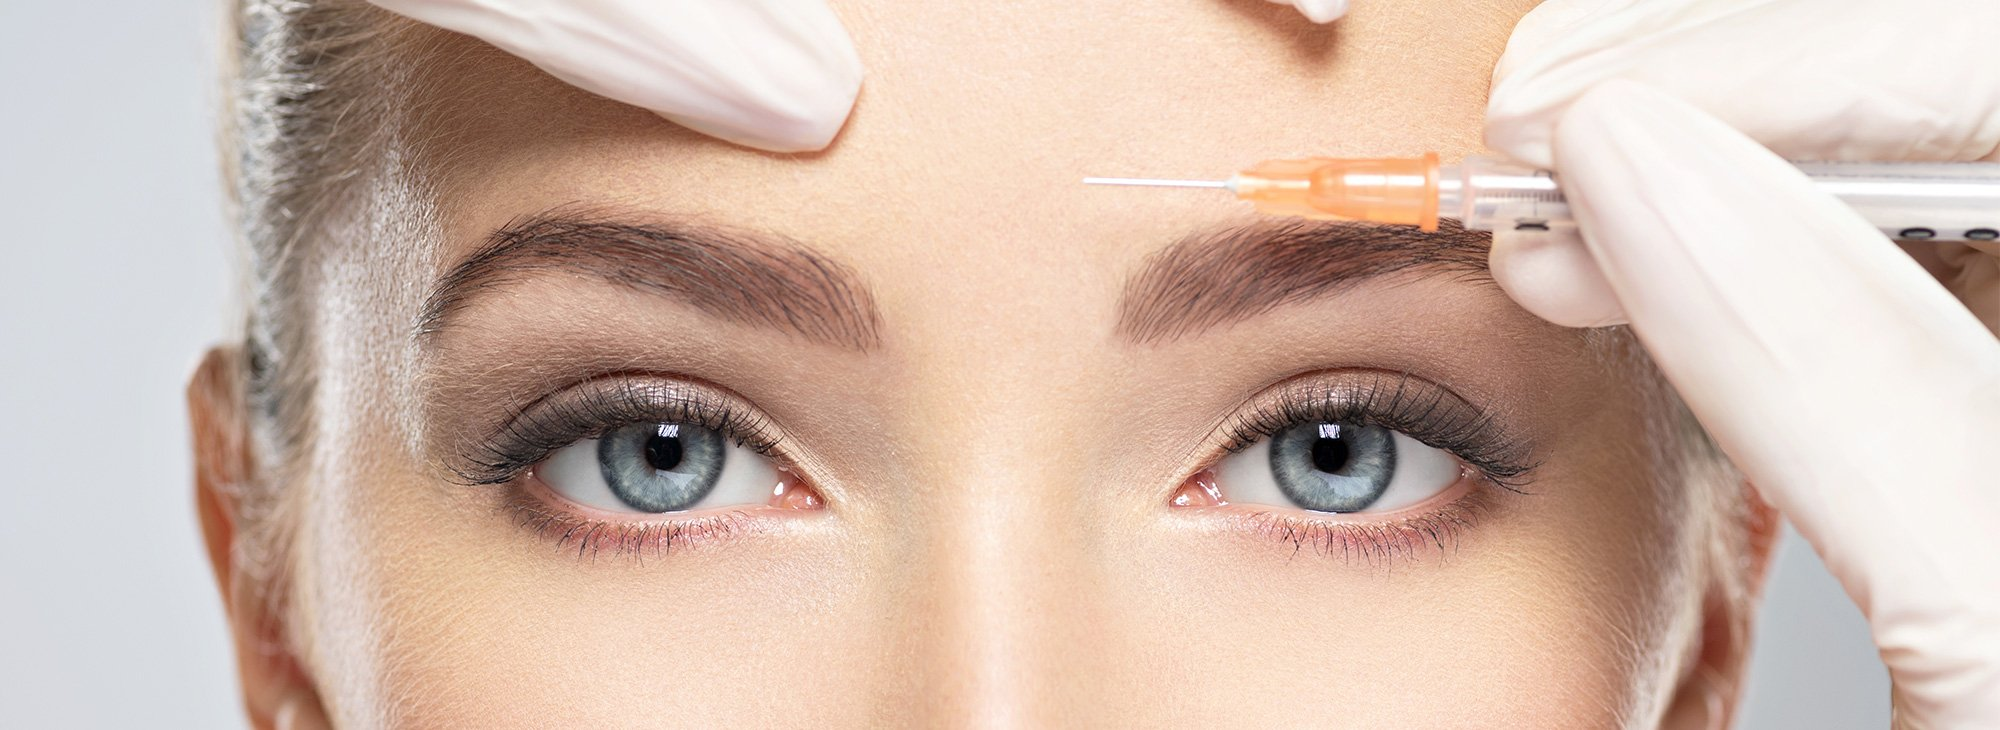 Cosmectic-Injections